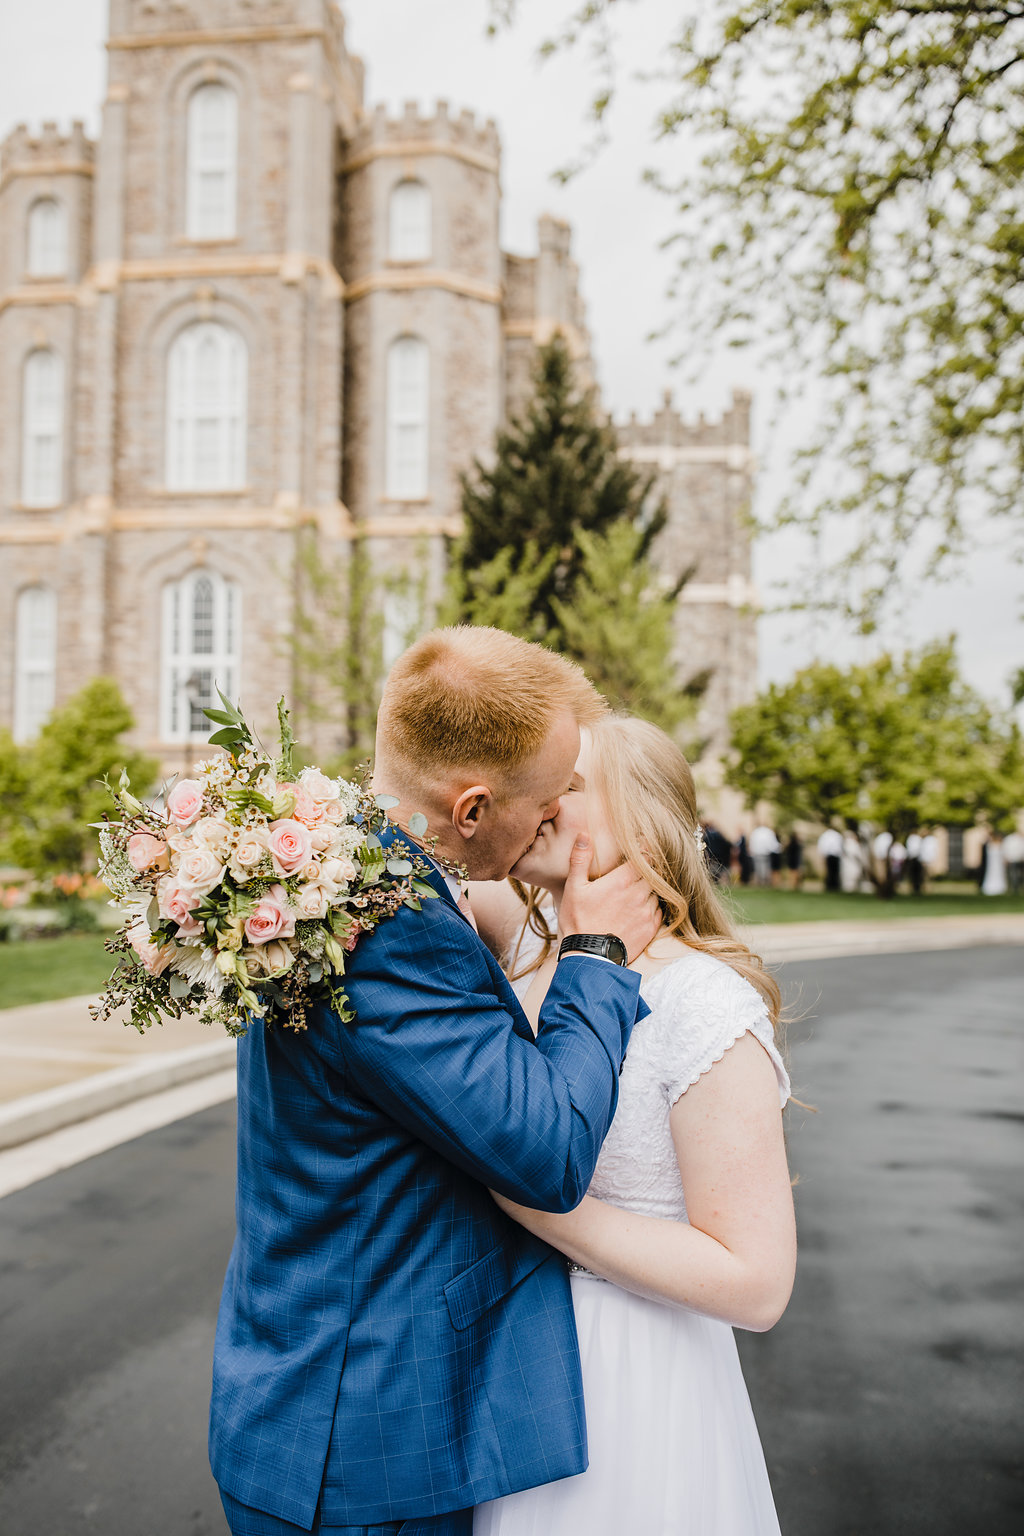 capture the beautiful moments from your wedding day with wedding photographer calli richards in cache valley logan utah